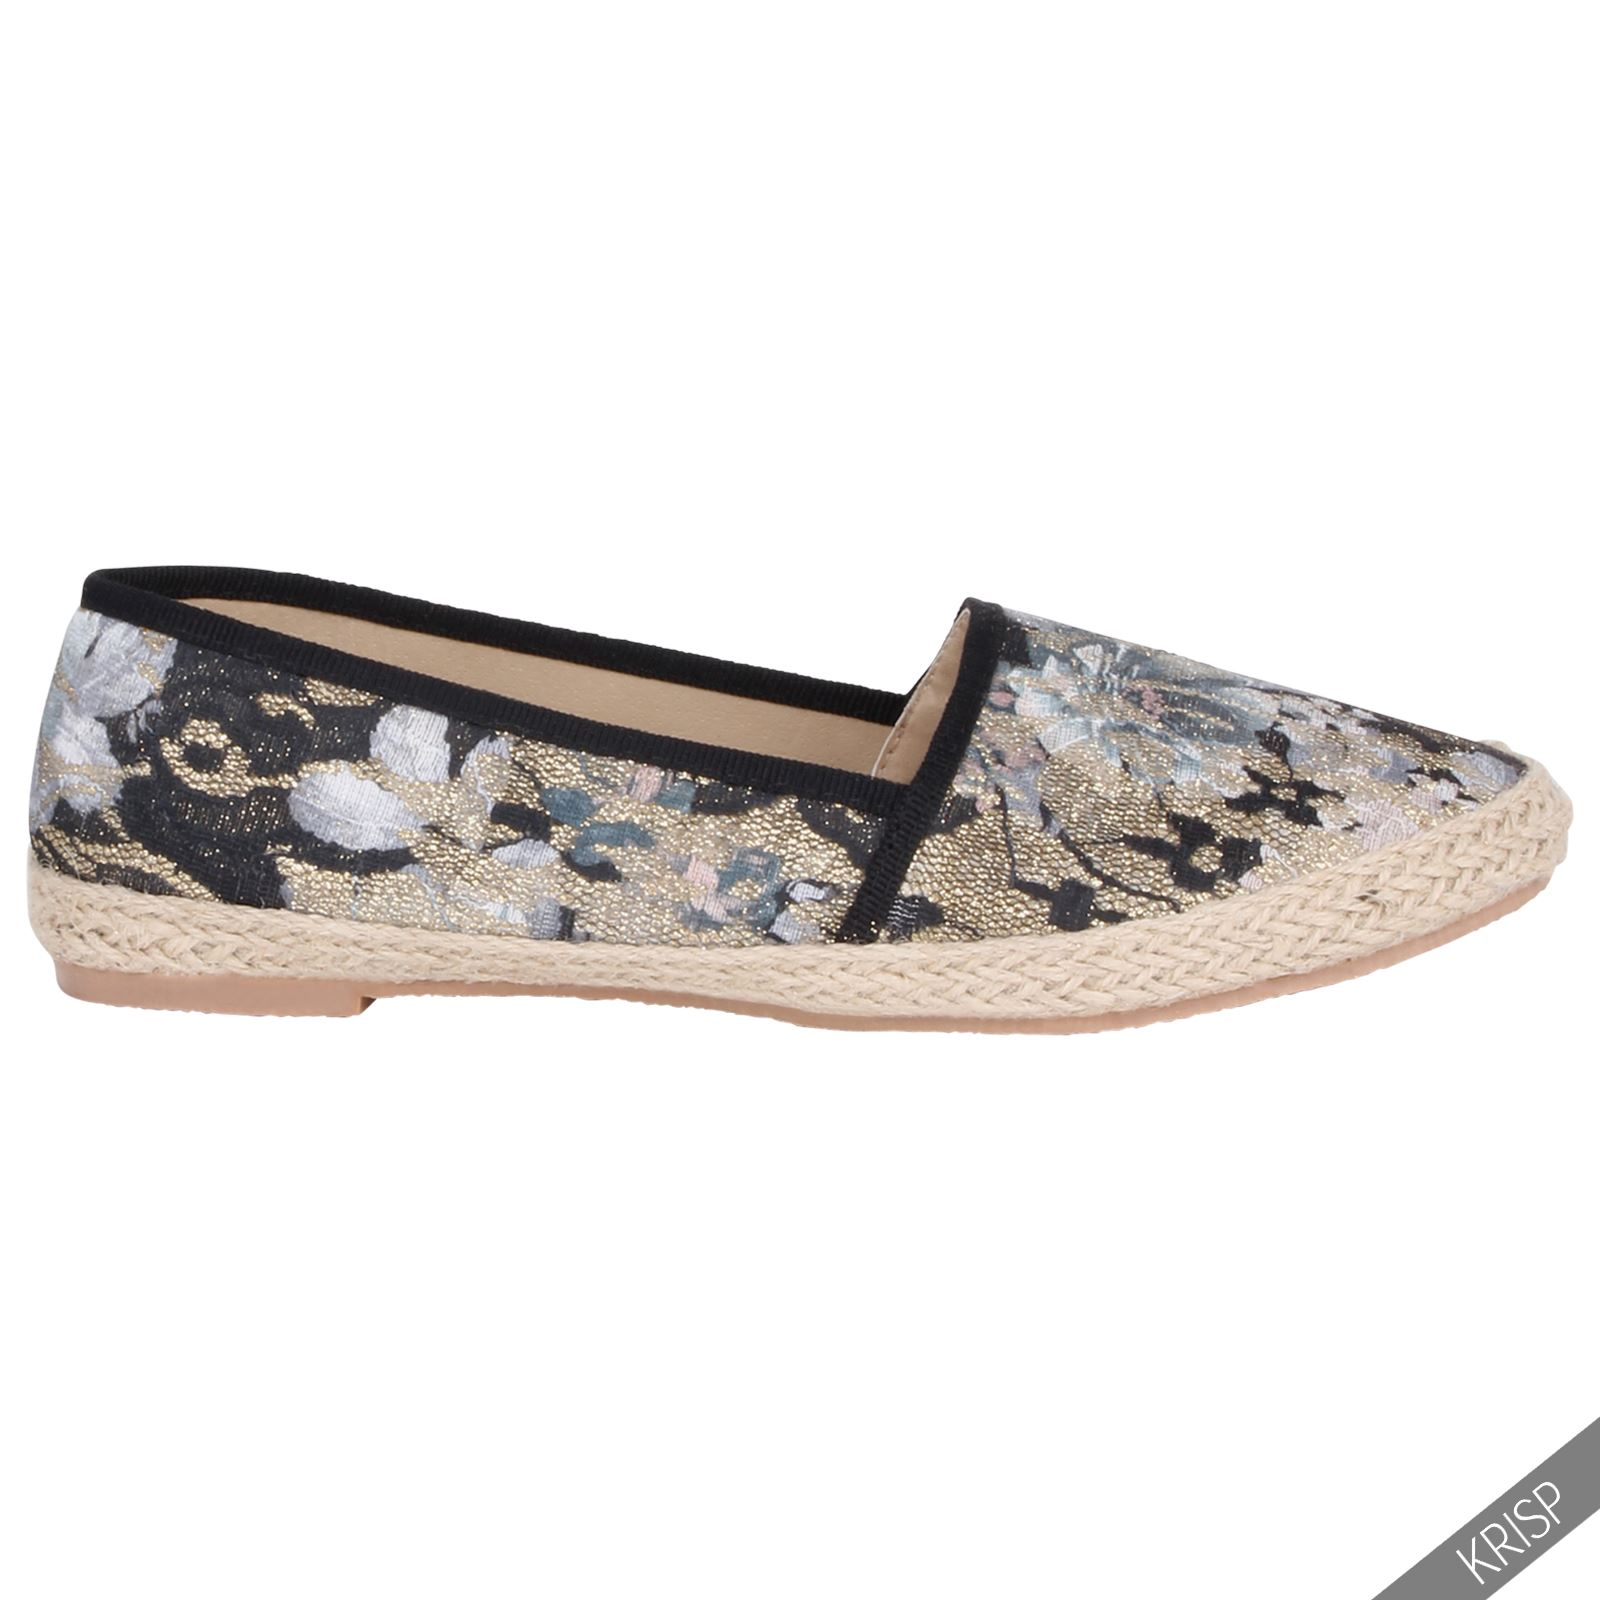 damen espadrilles comfort schuhe blumenmuster gold spitze slipper flach sommer ebay. Black Bedroom Furniture Sets. Home Design Ideas